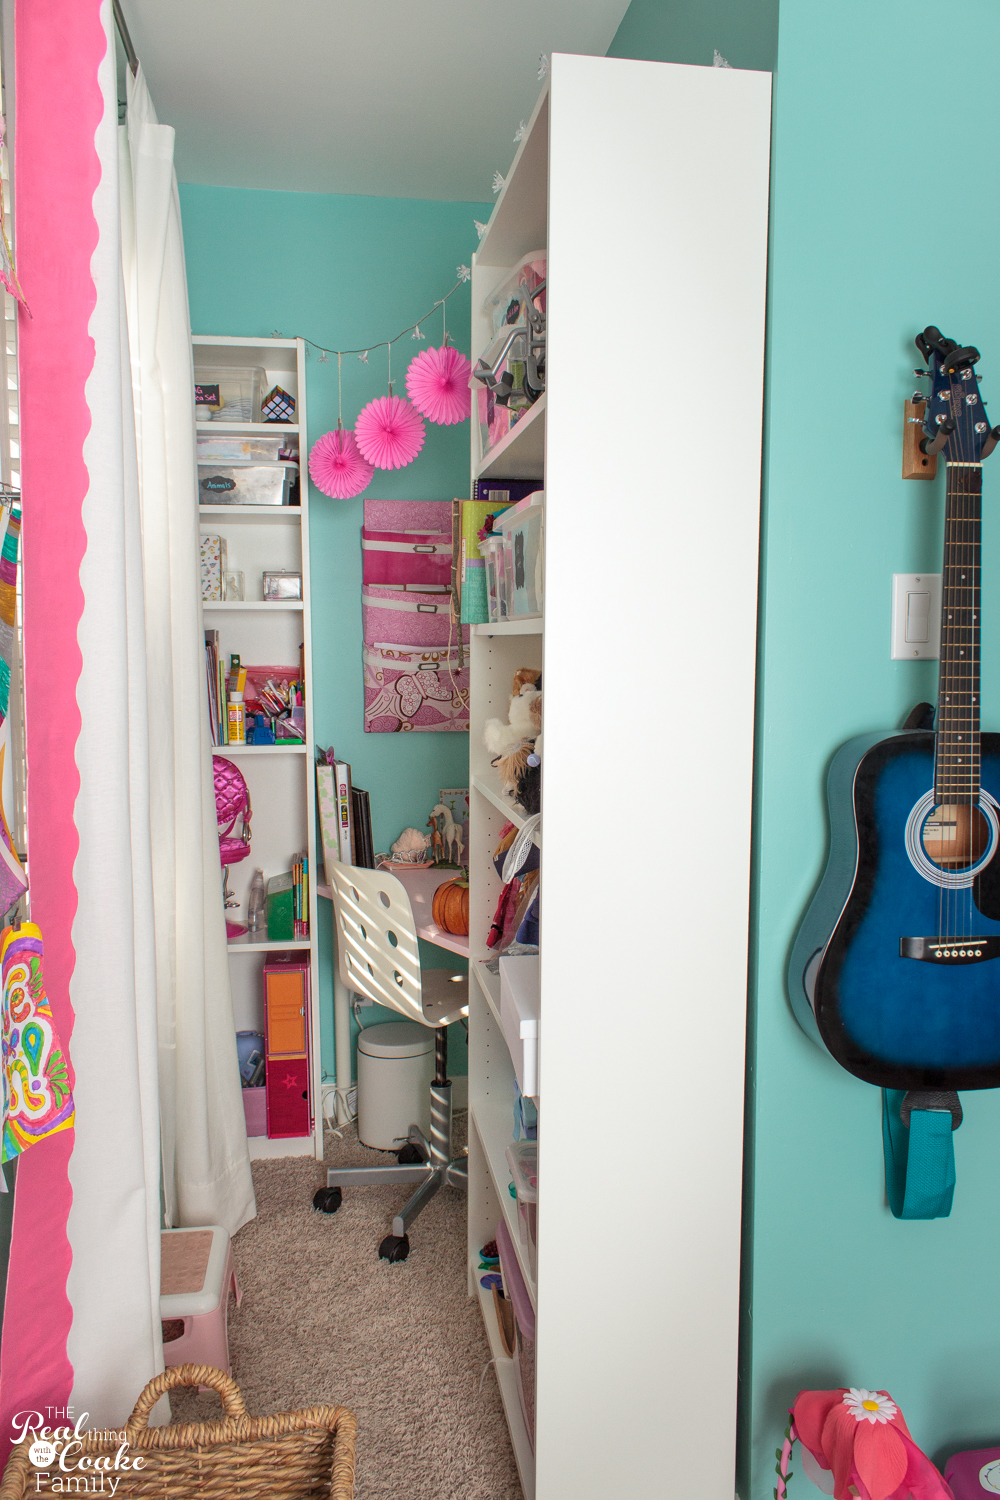 Cute bedroom ideas 21 the real thing with the coake family - Cute room ideas for tweens ...